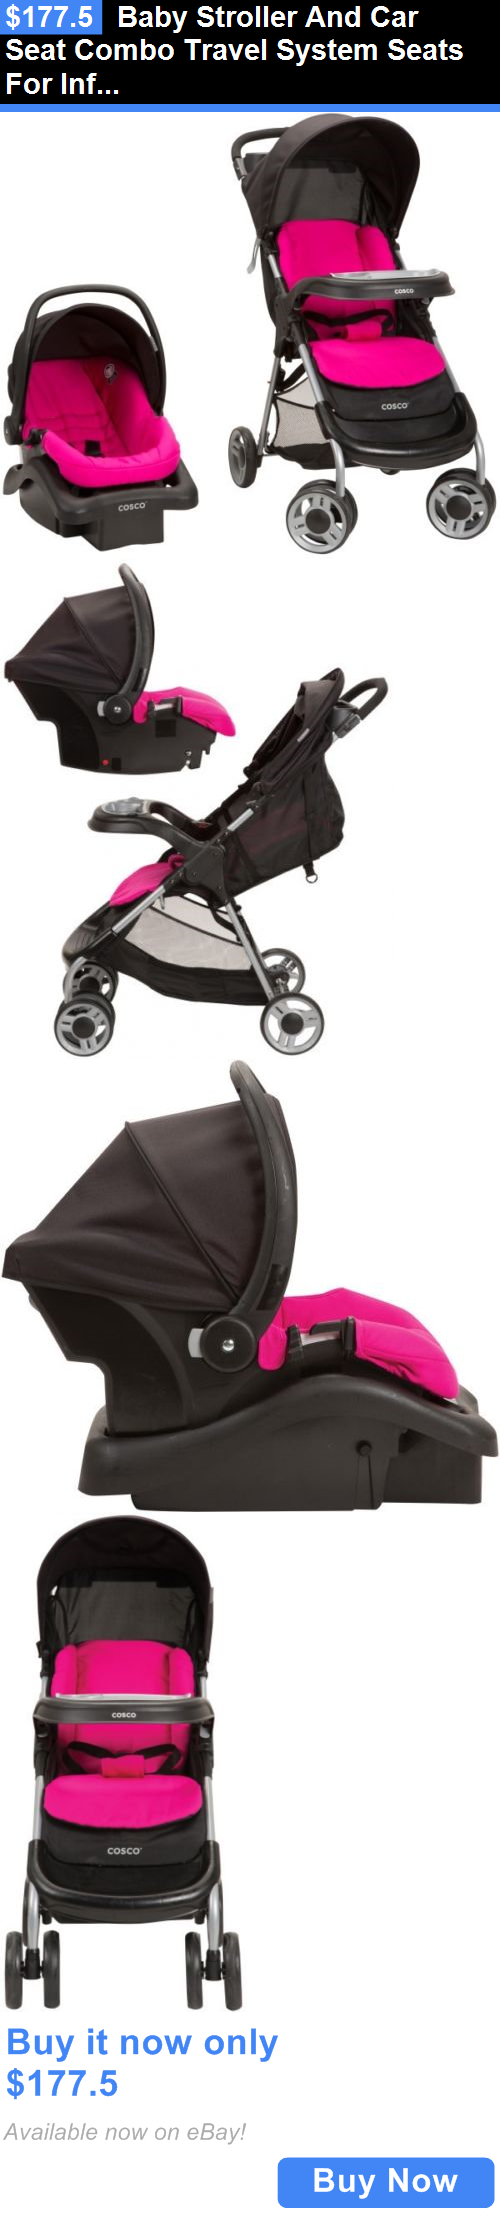 Baby Baby Stroller And Car Seat Combo Travel System Seats